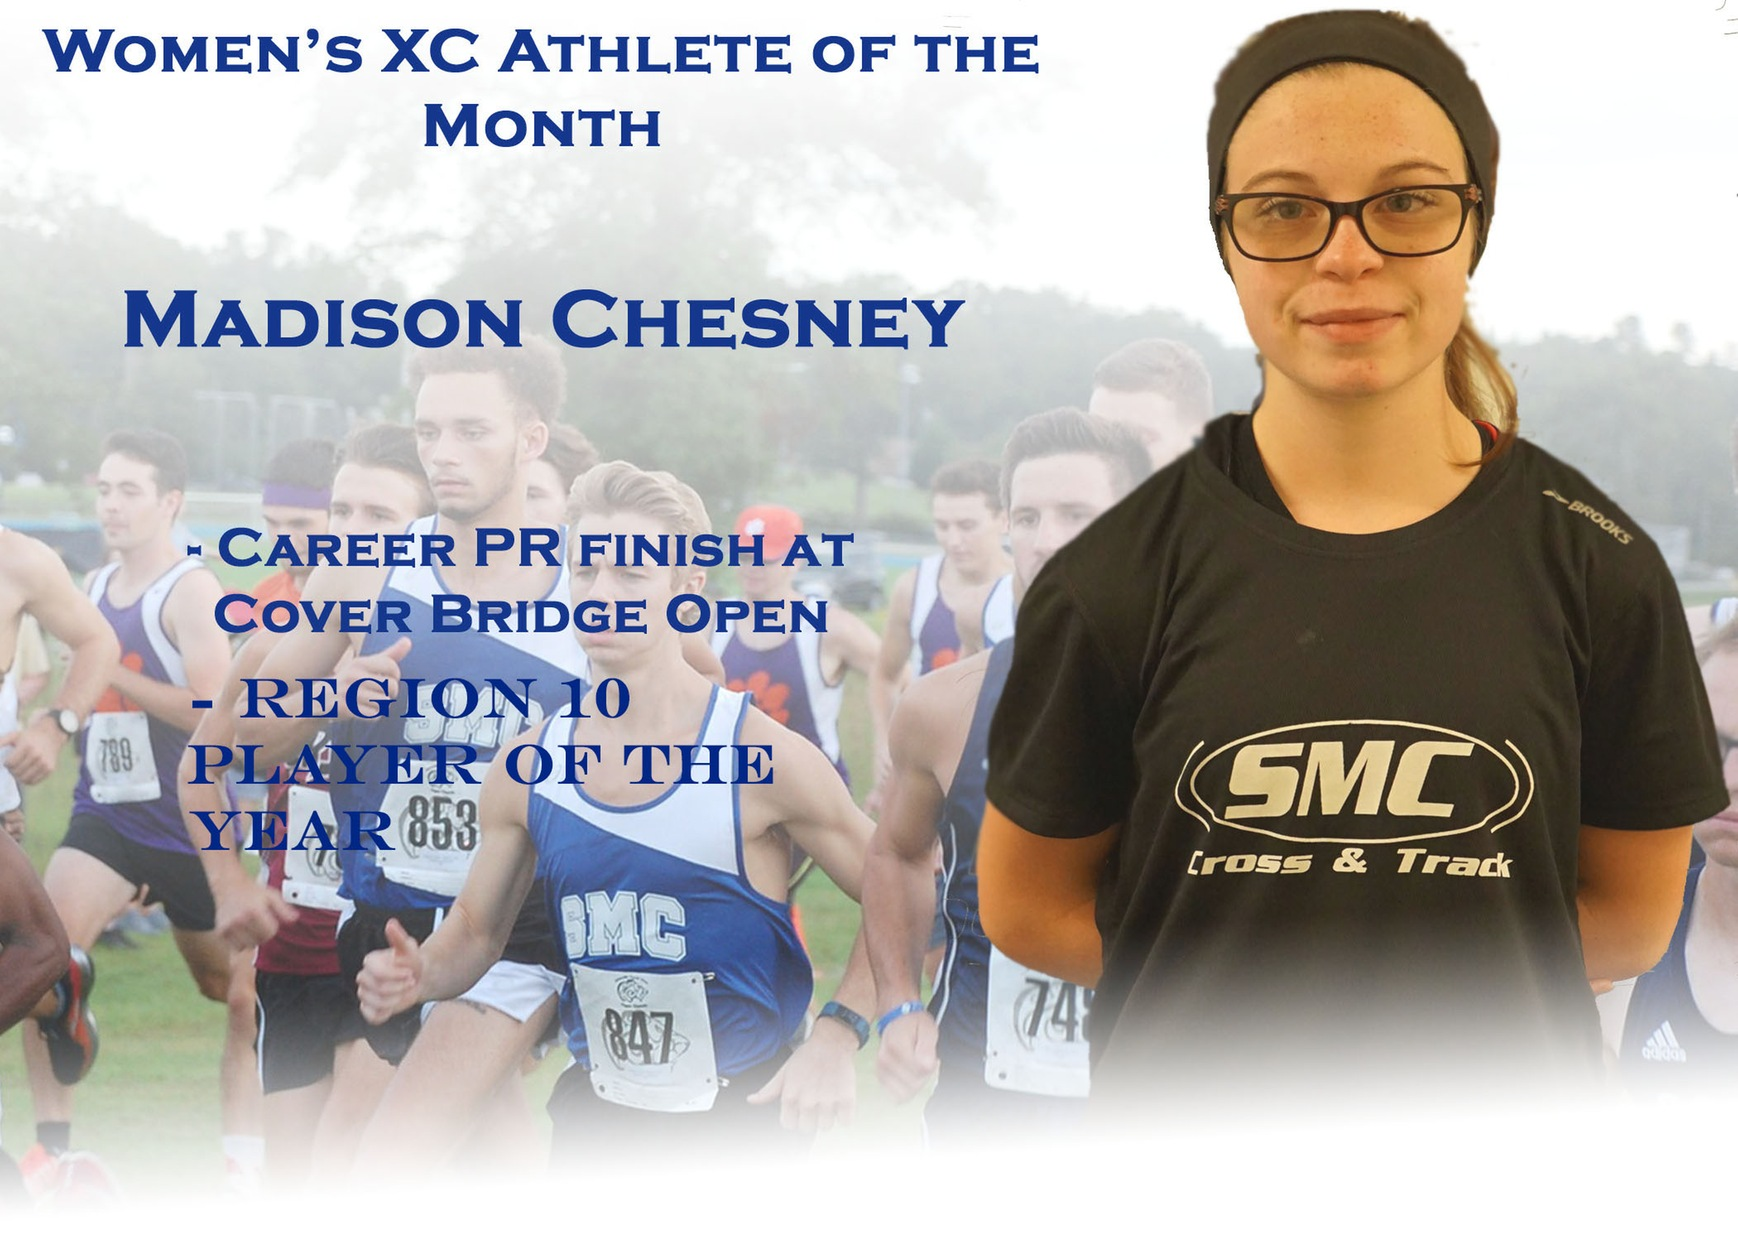 Women's XC Athlete of the Month